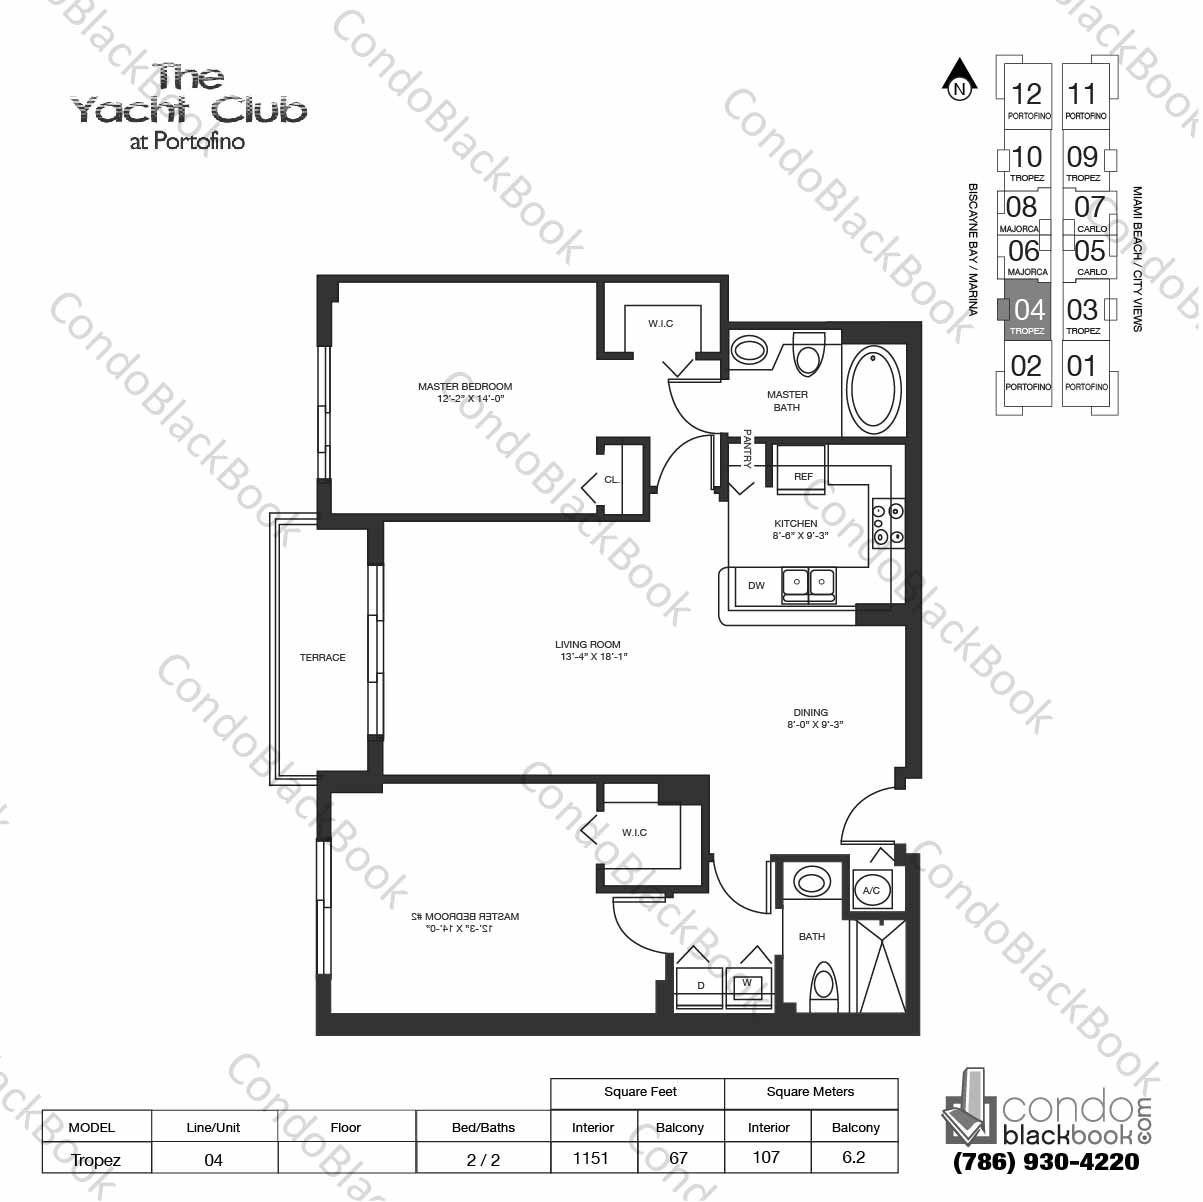 Floor plan for Yacht Club at Portofino South Beach Miami Beach, model Tropez, line 04,  2 / 2 bedrooms, 1151 sq ft